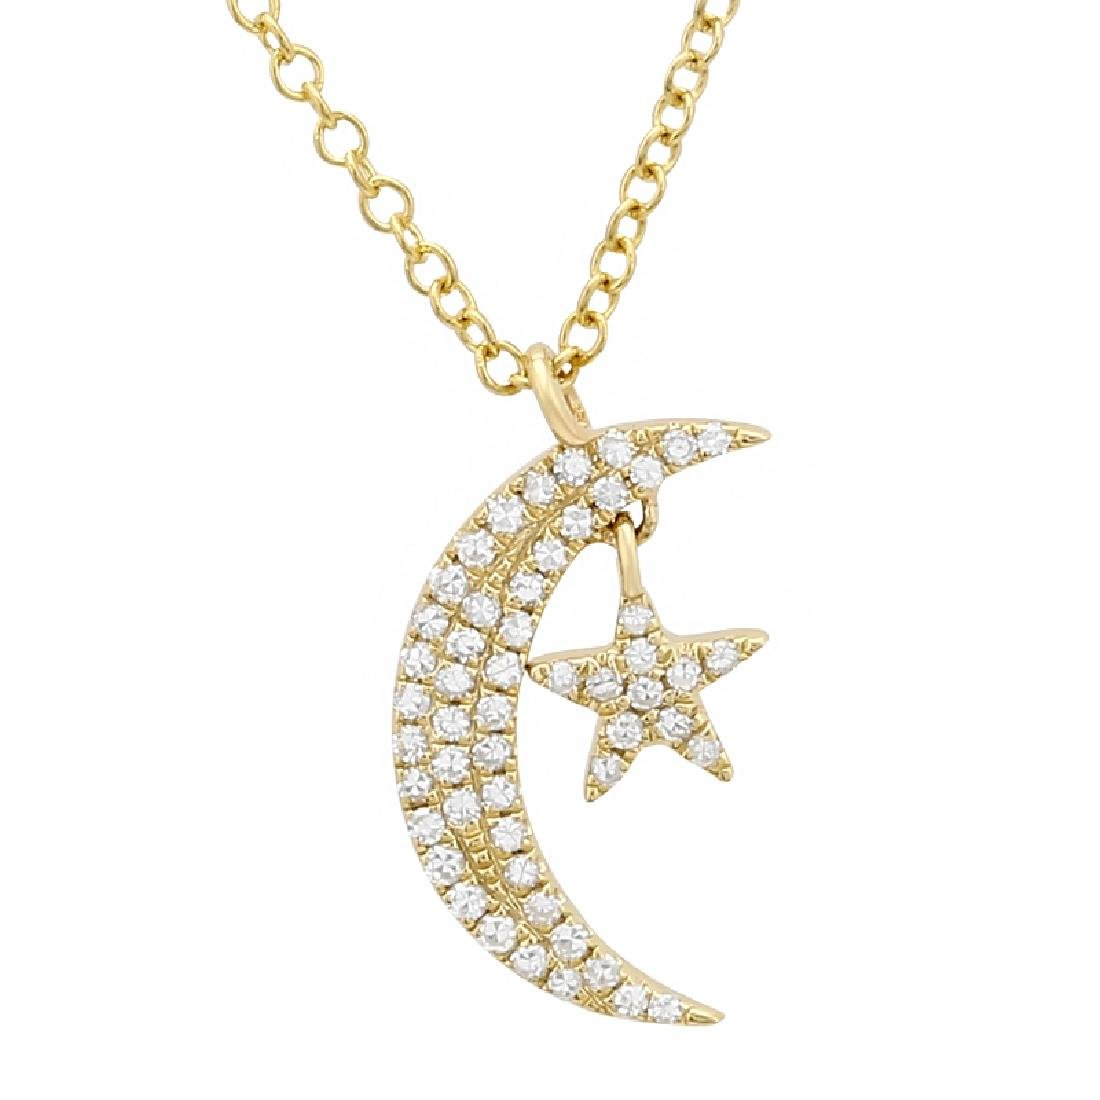 14KT Yellow Gold Diamond Pendant With Chain